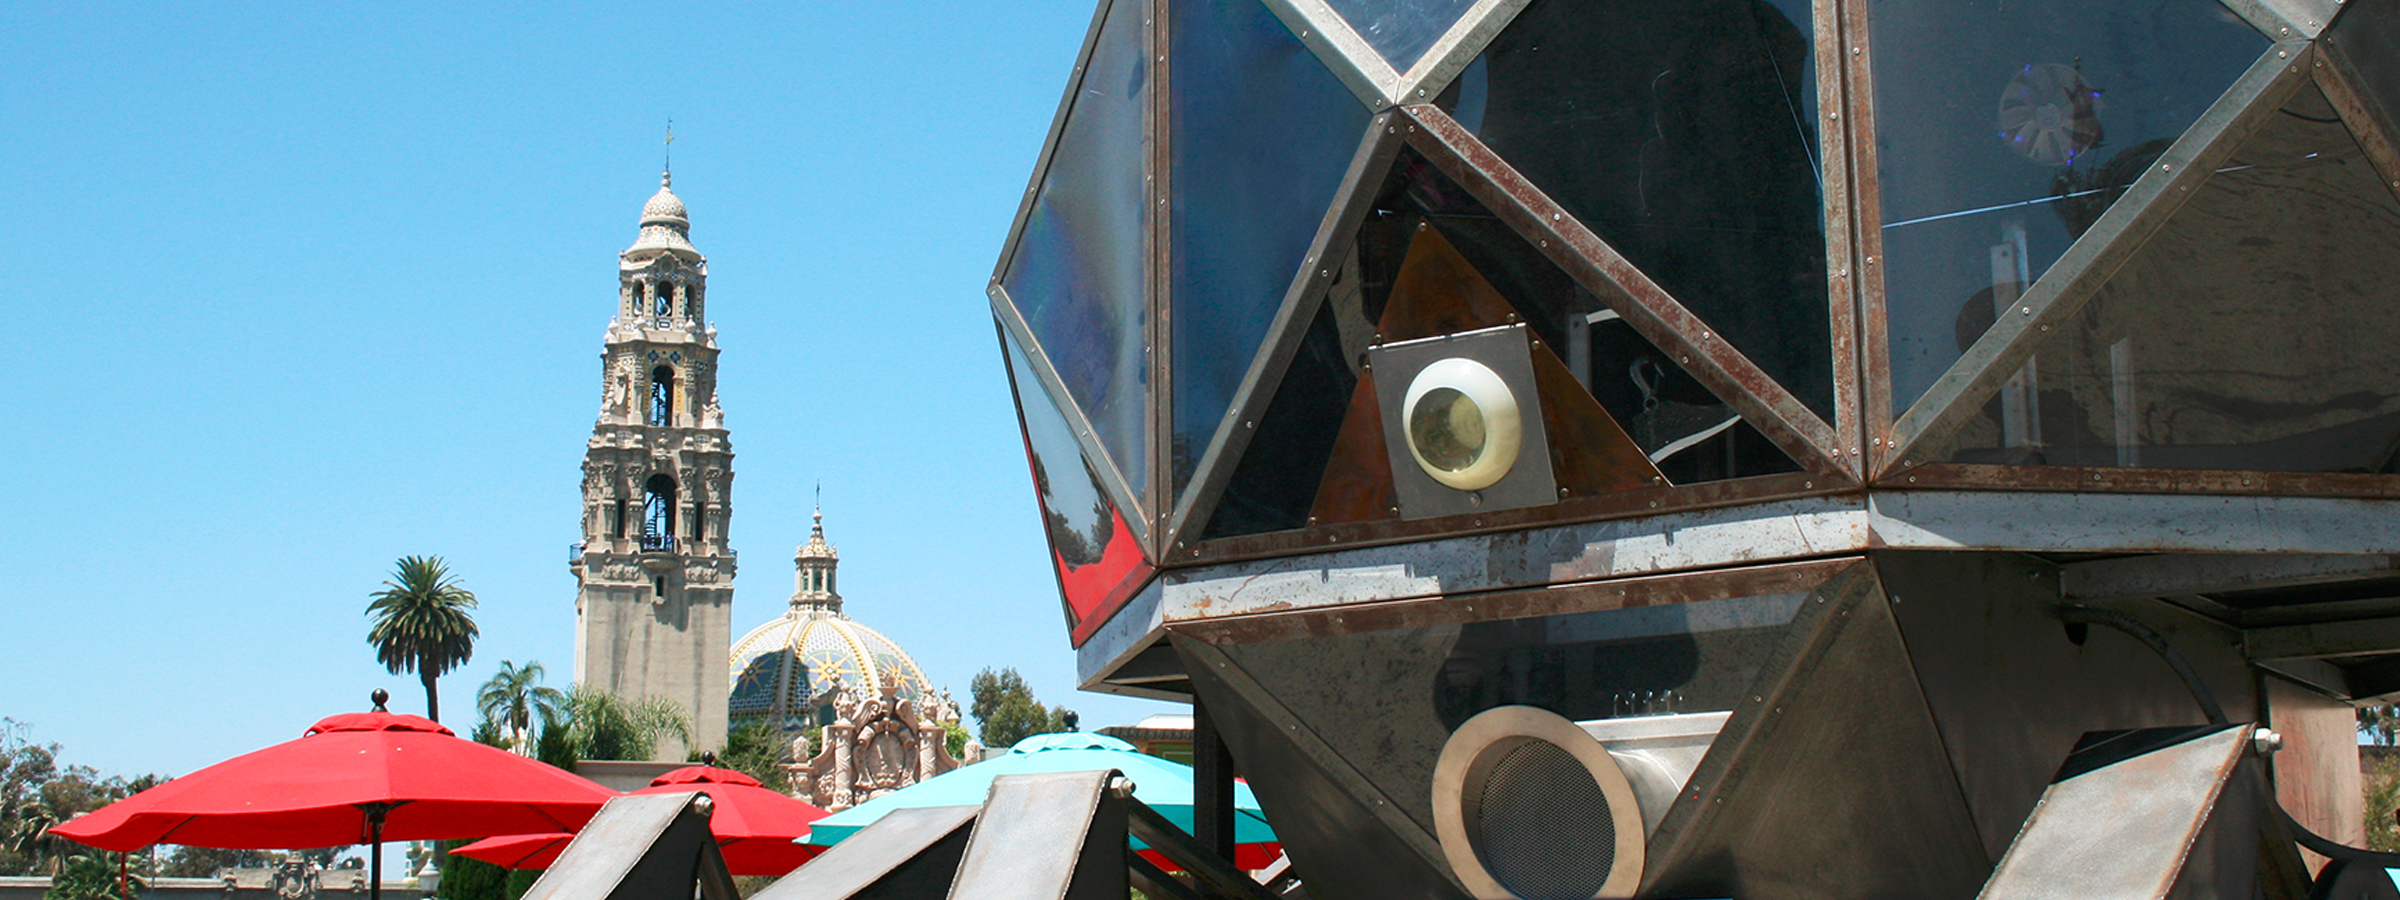 The Walking Pod and California Tower in Balboa Park - Maker Faire San Diego